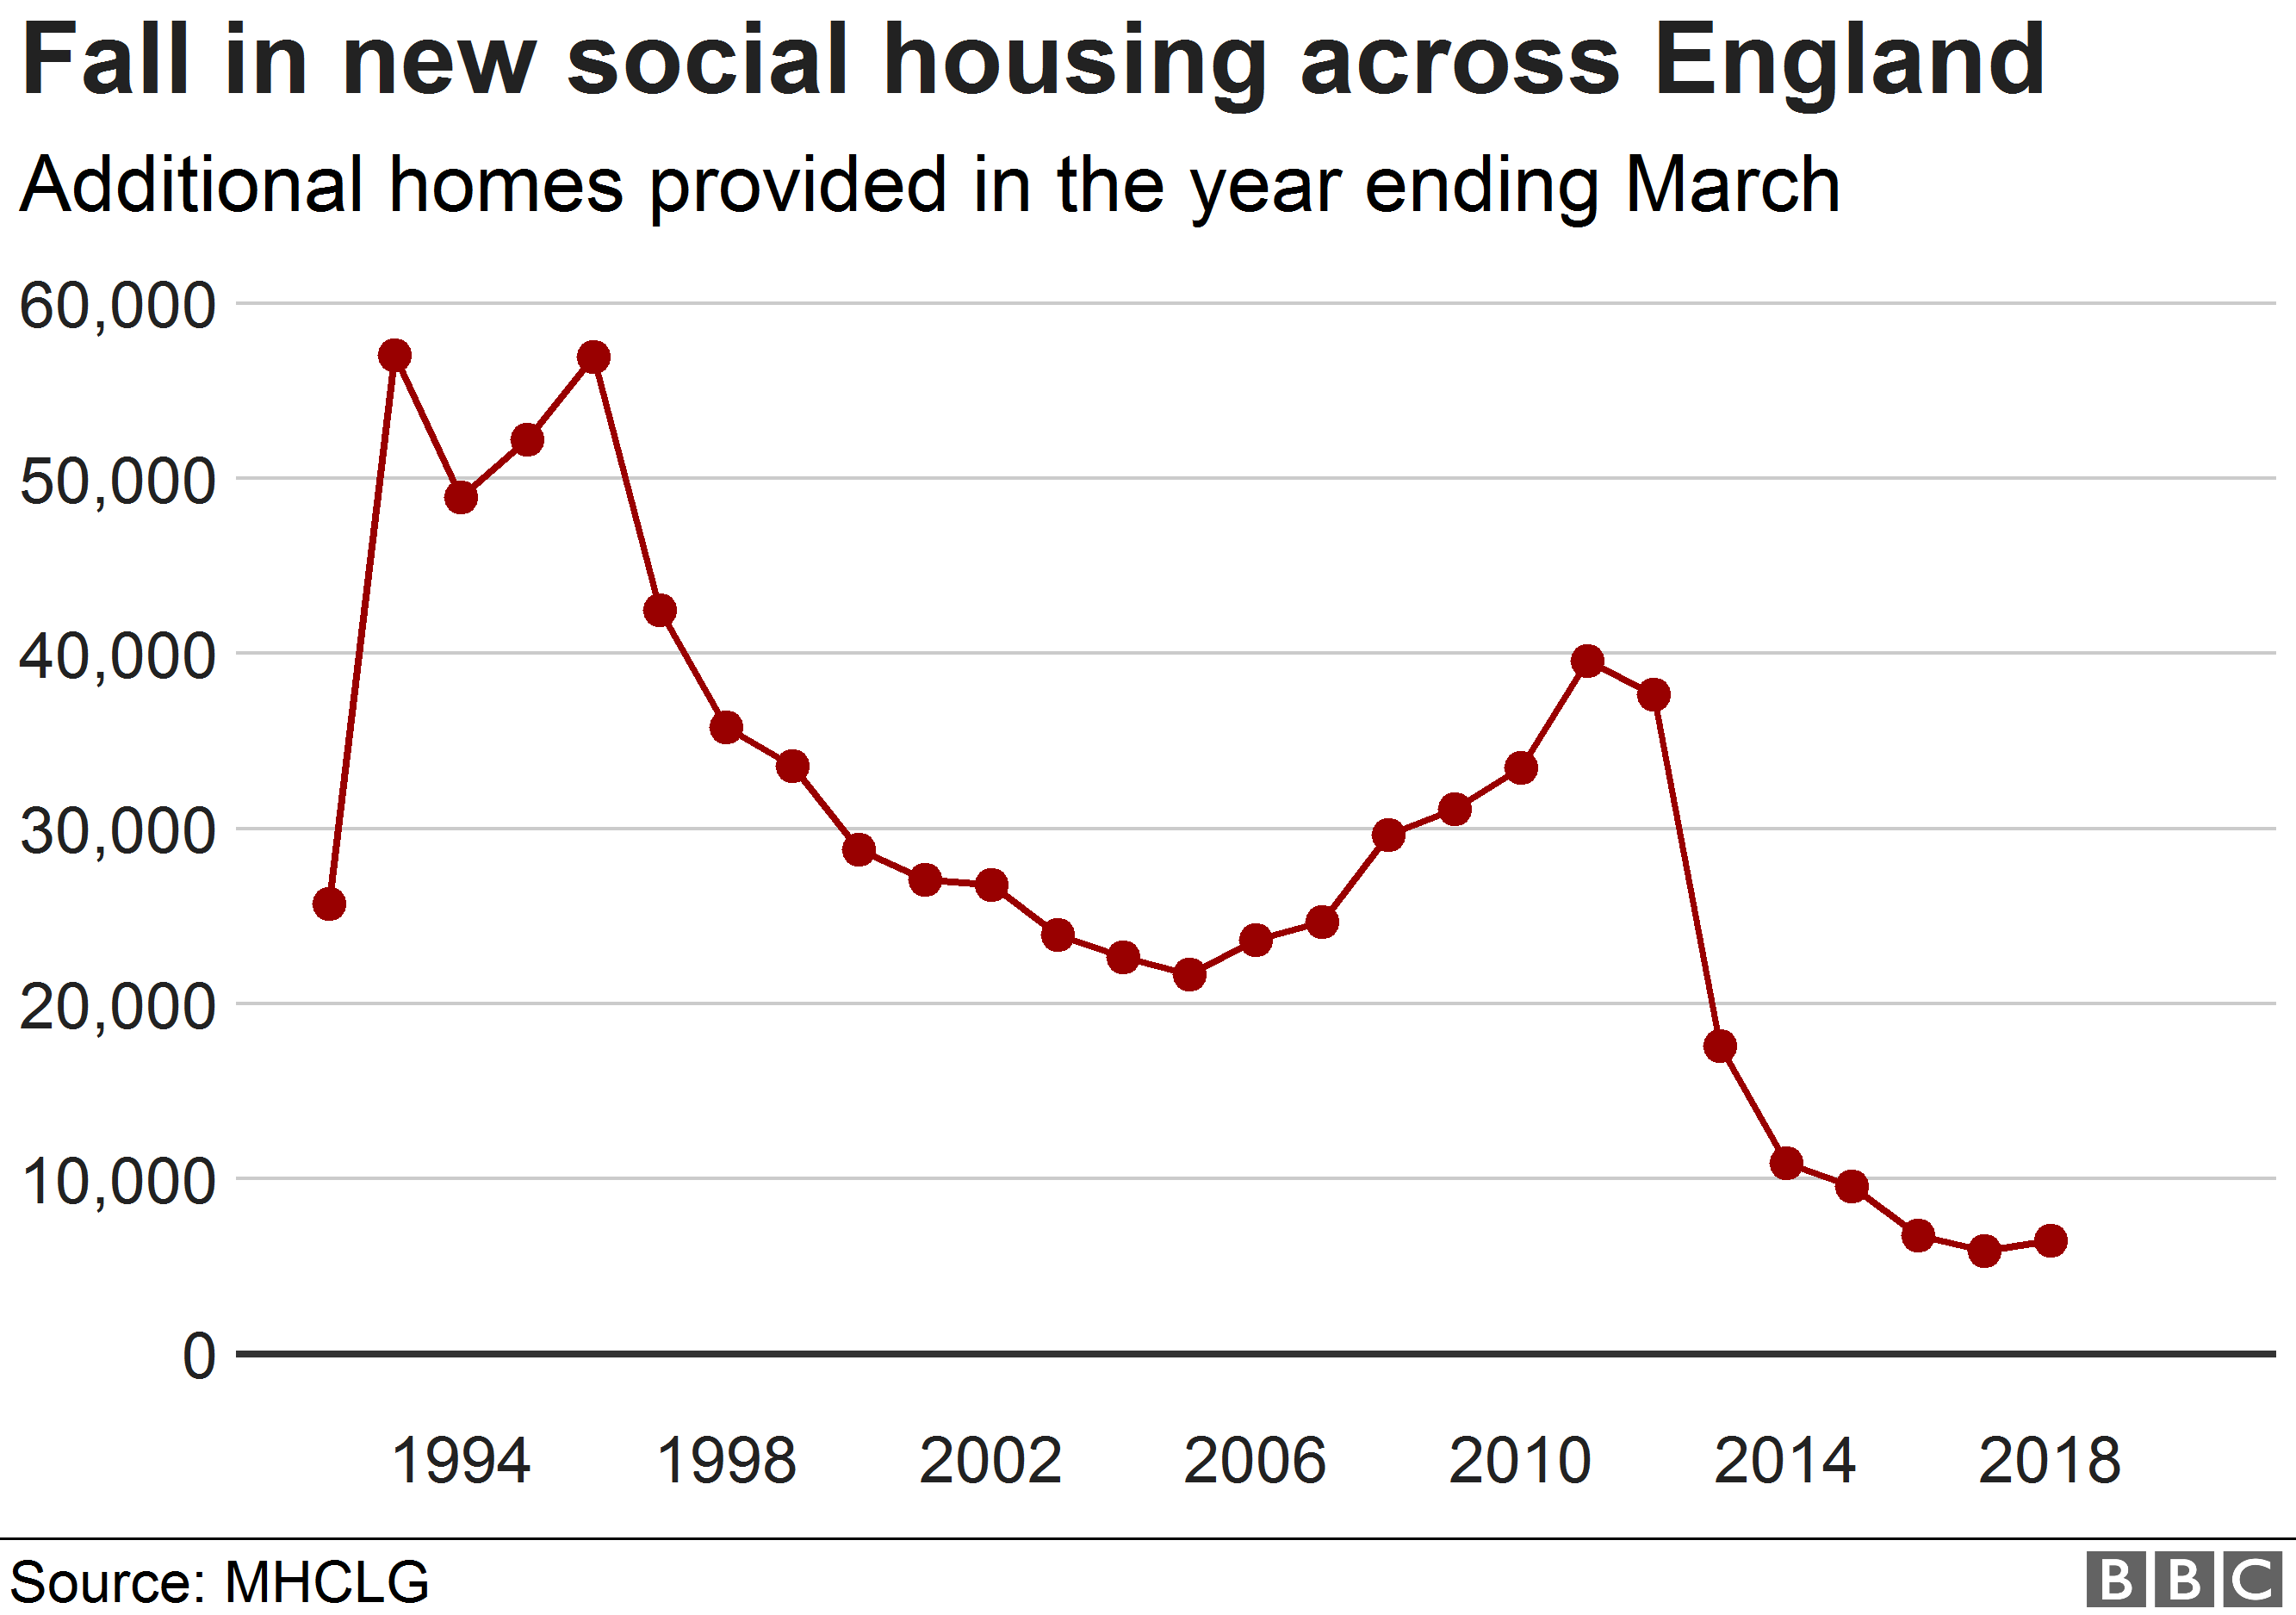 Chart showing change in social housing supply